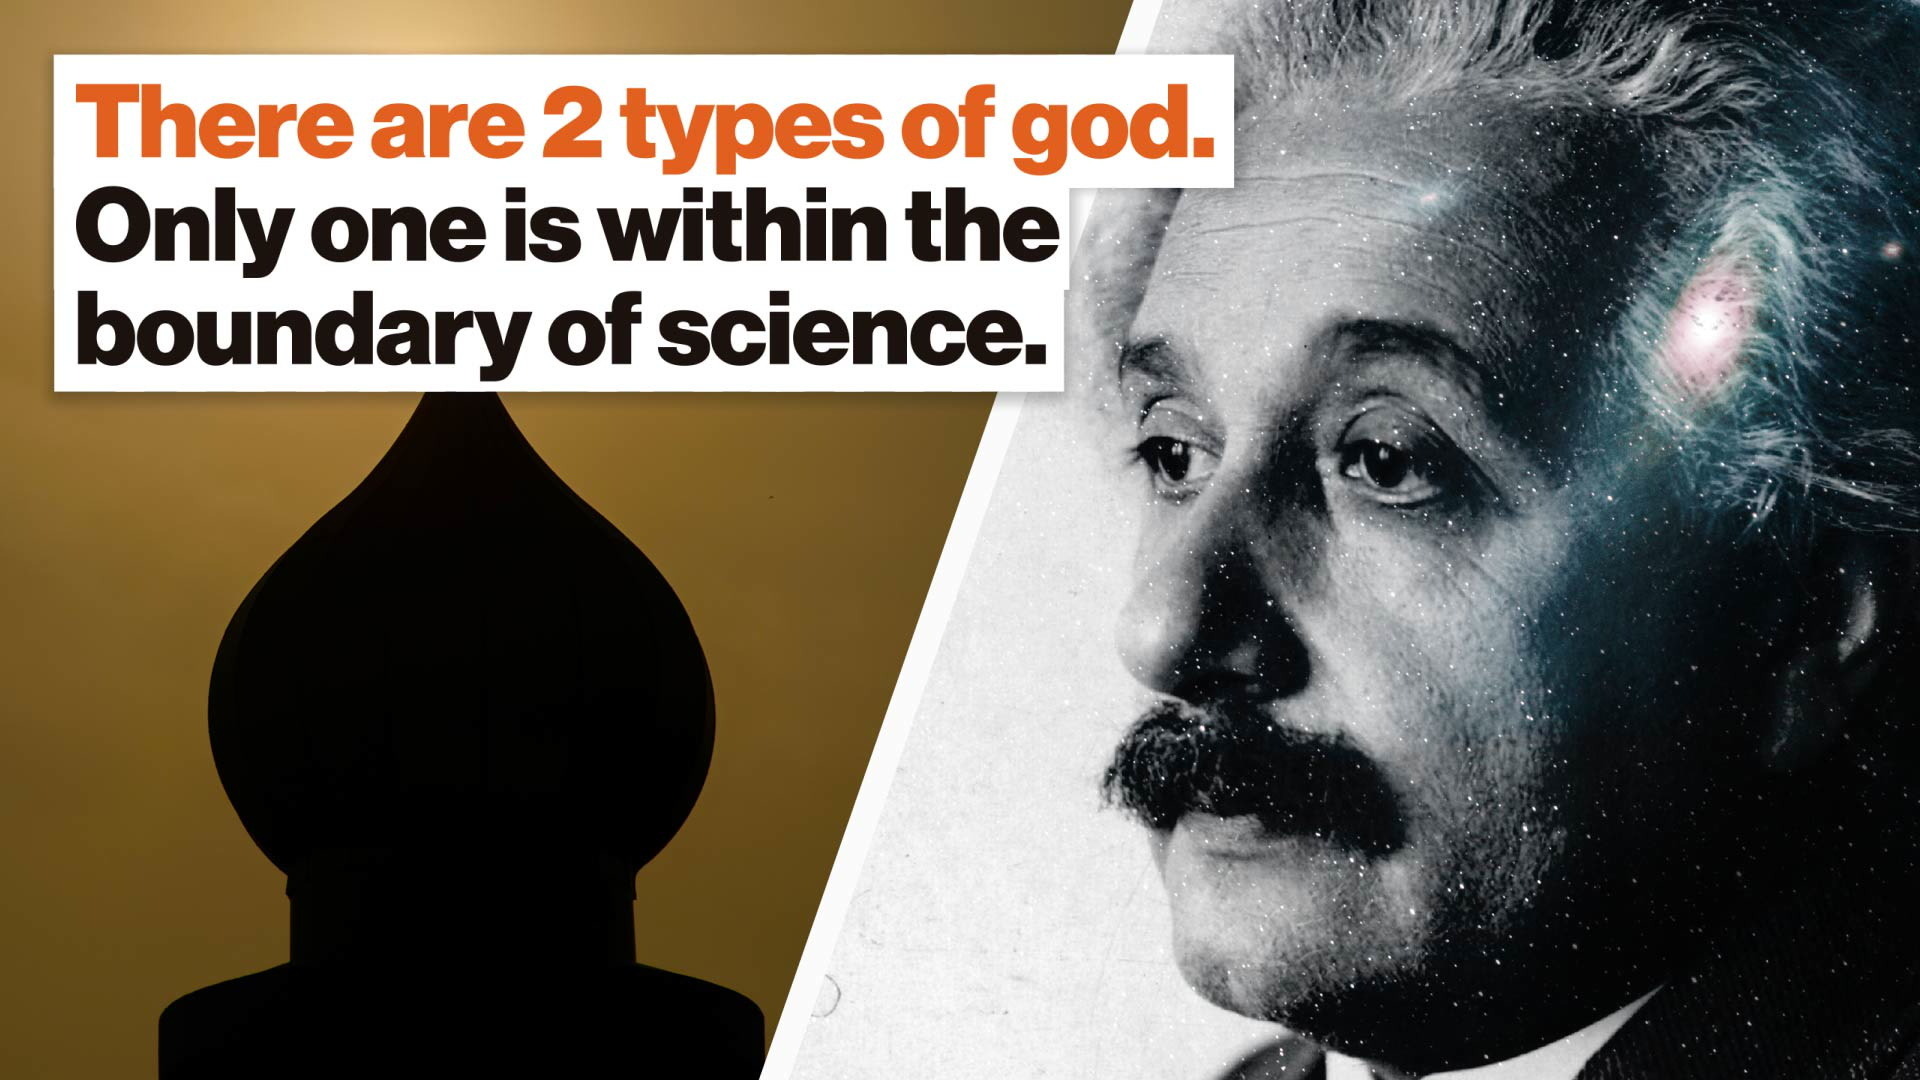 There are 2 types of god. Only one is within the boundary of science.